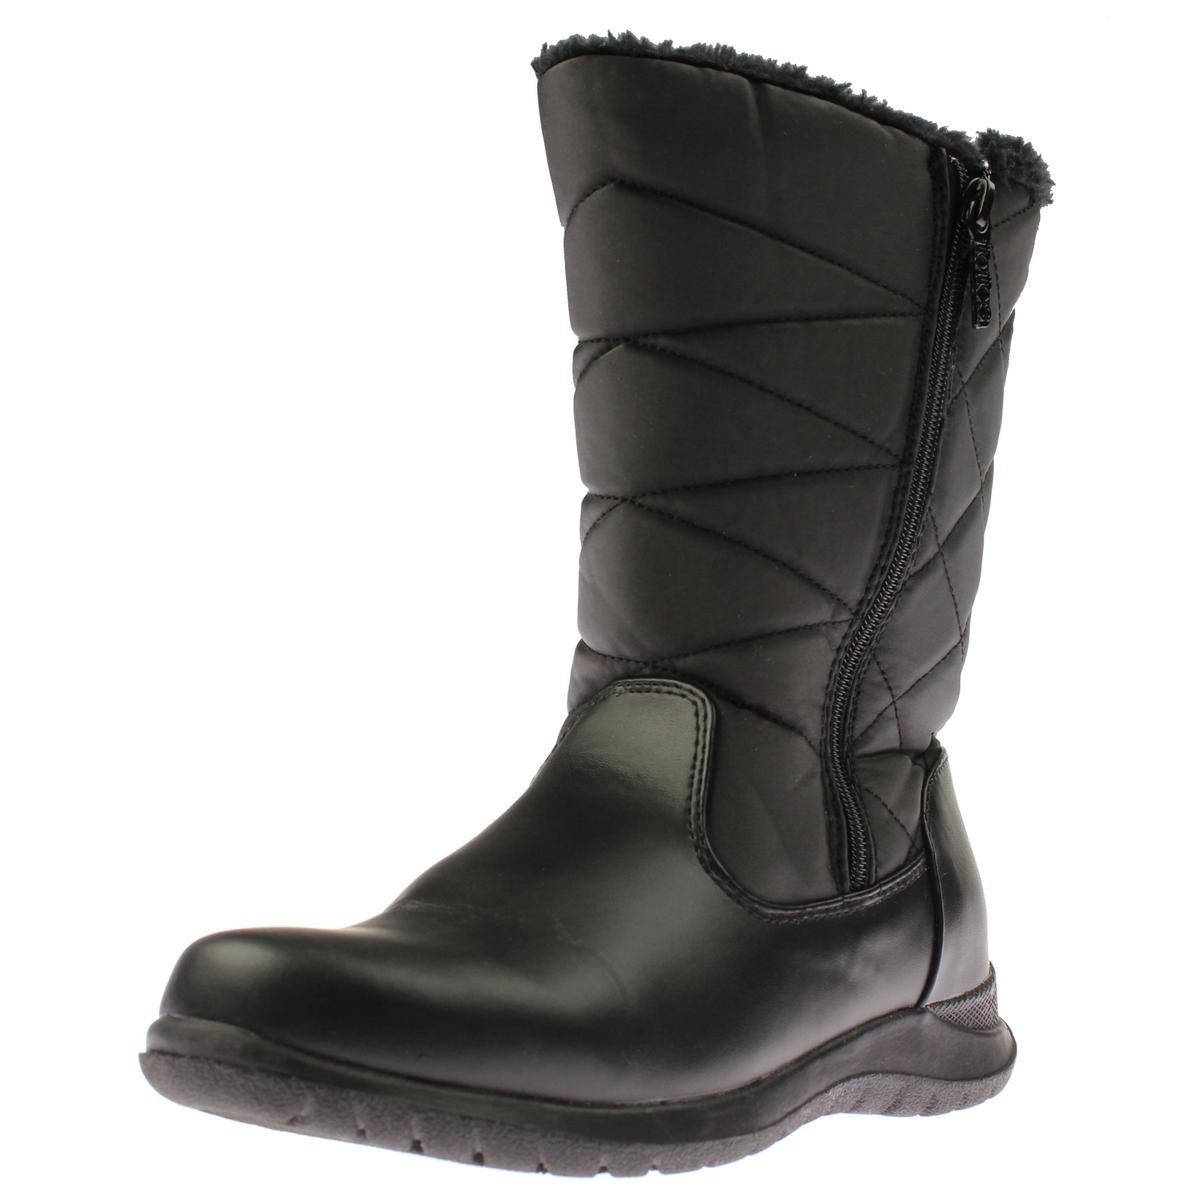 Totes Womens Edgen Faux Leather Waterproof Snow Boots - Thumbnail 0